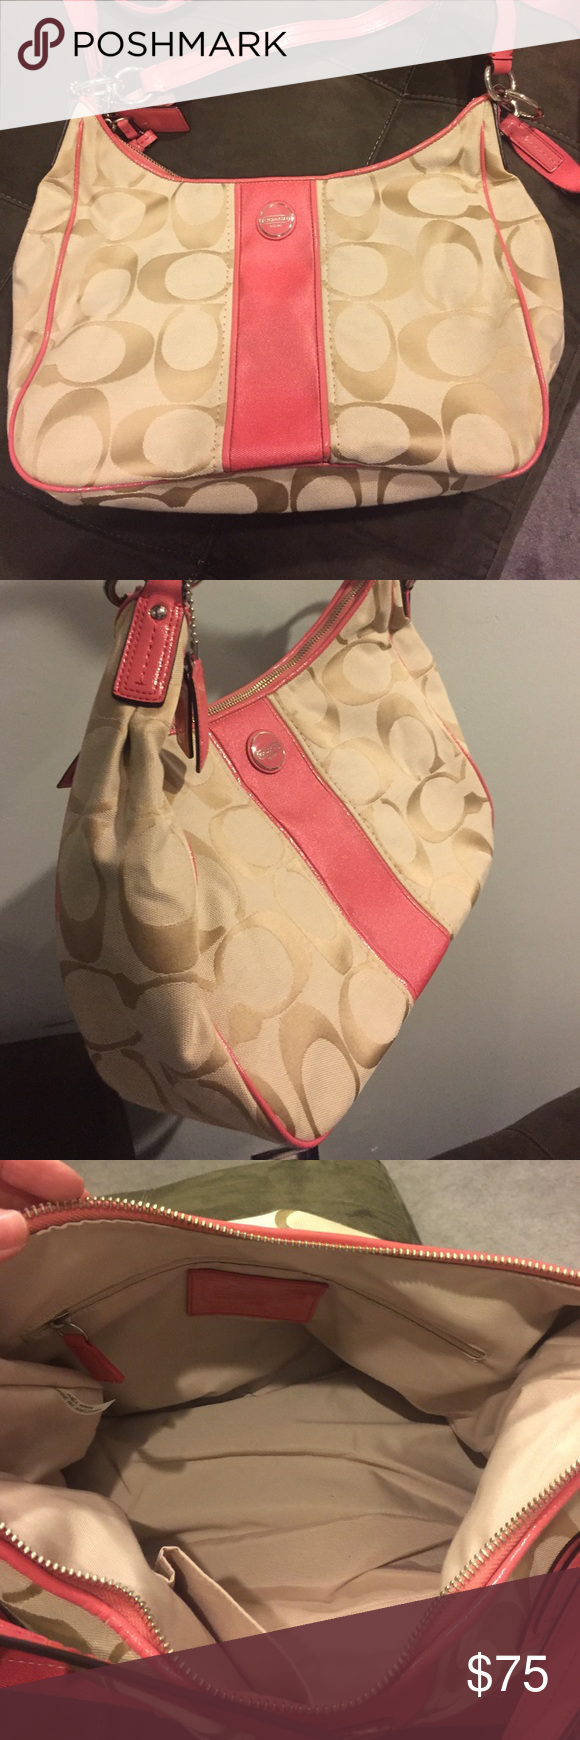 Coach handbag Excellent condition coach handbag. Has crossbody strap as well. Used just a few times. Tan and coral. Fabric. Coach Bags Shoulder Bags